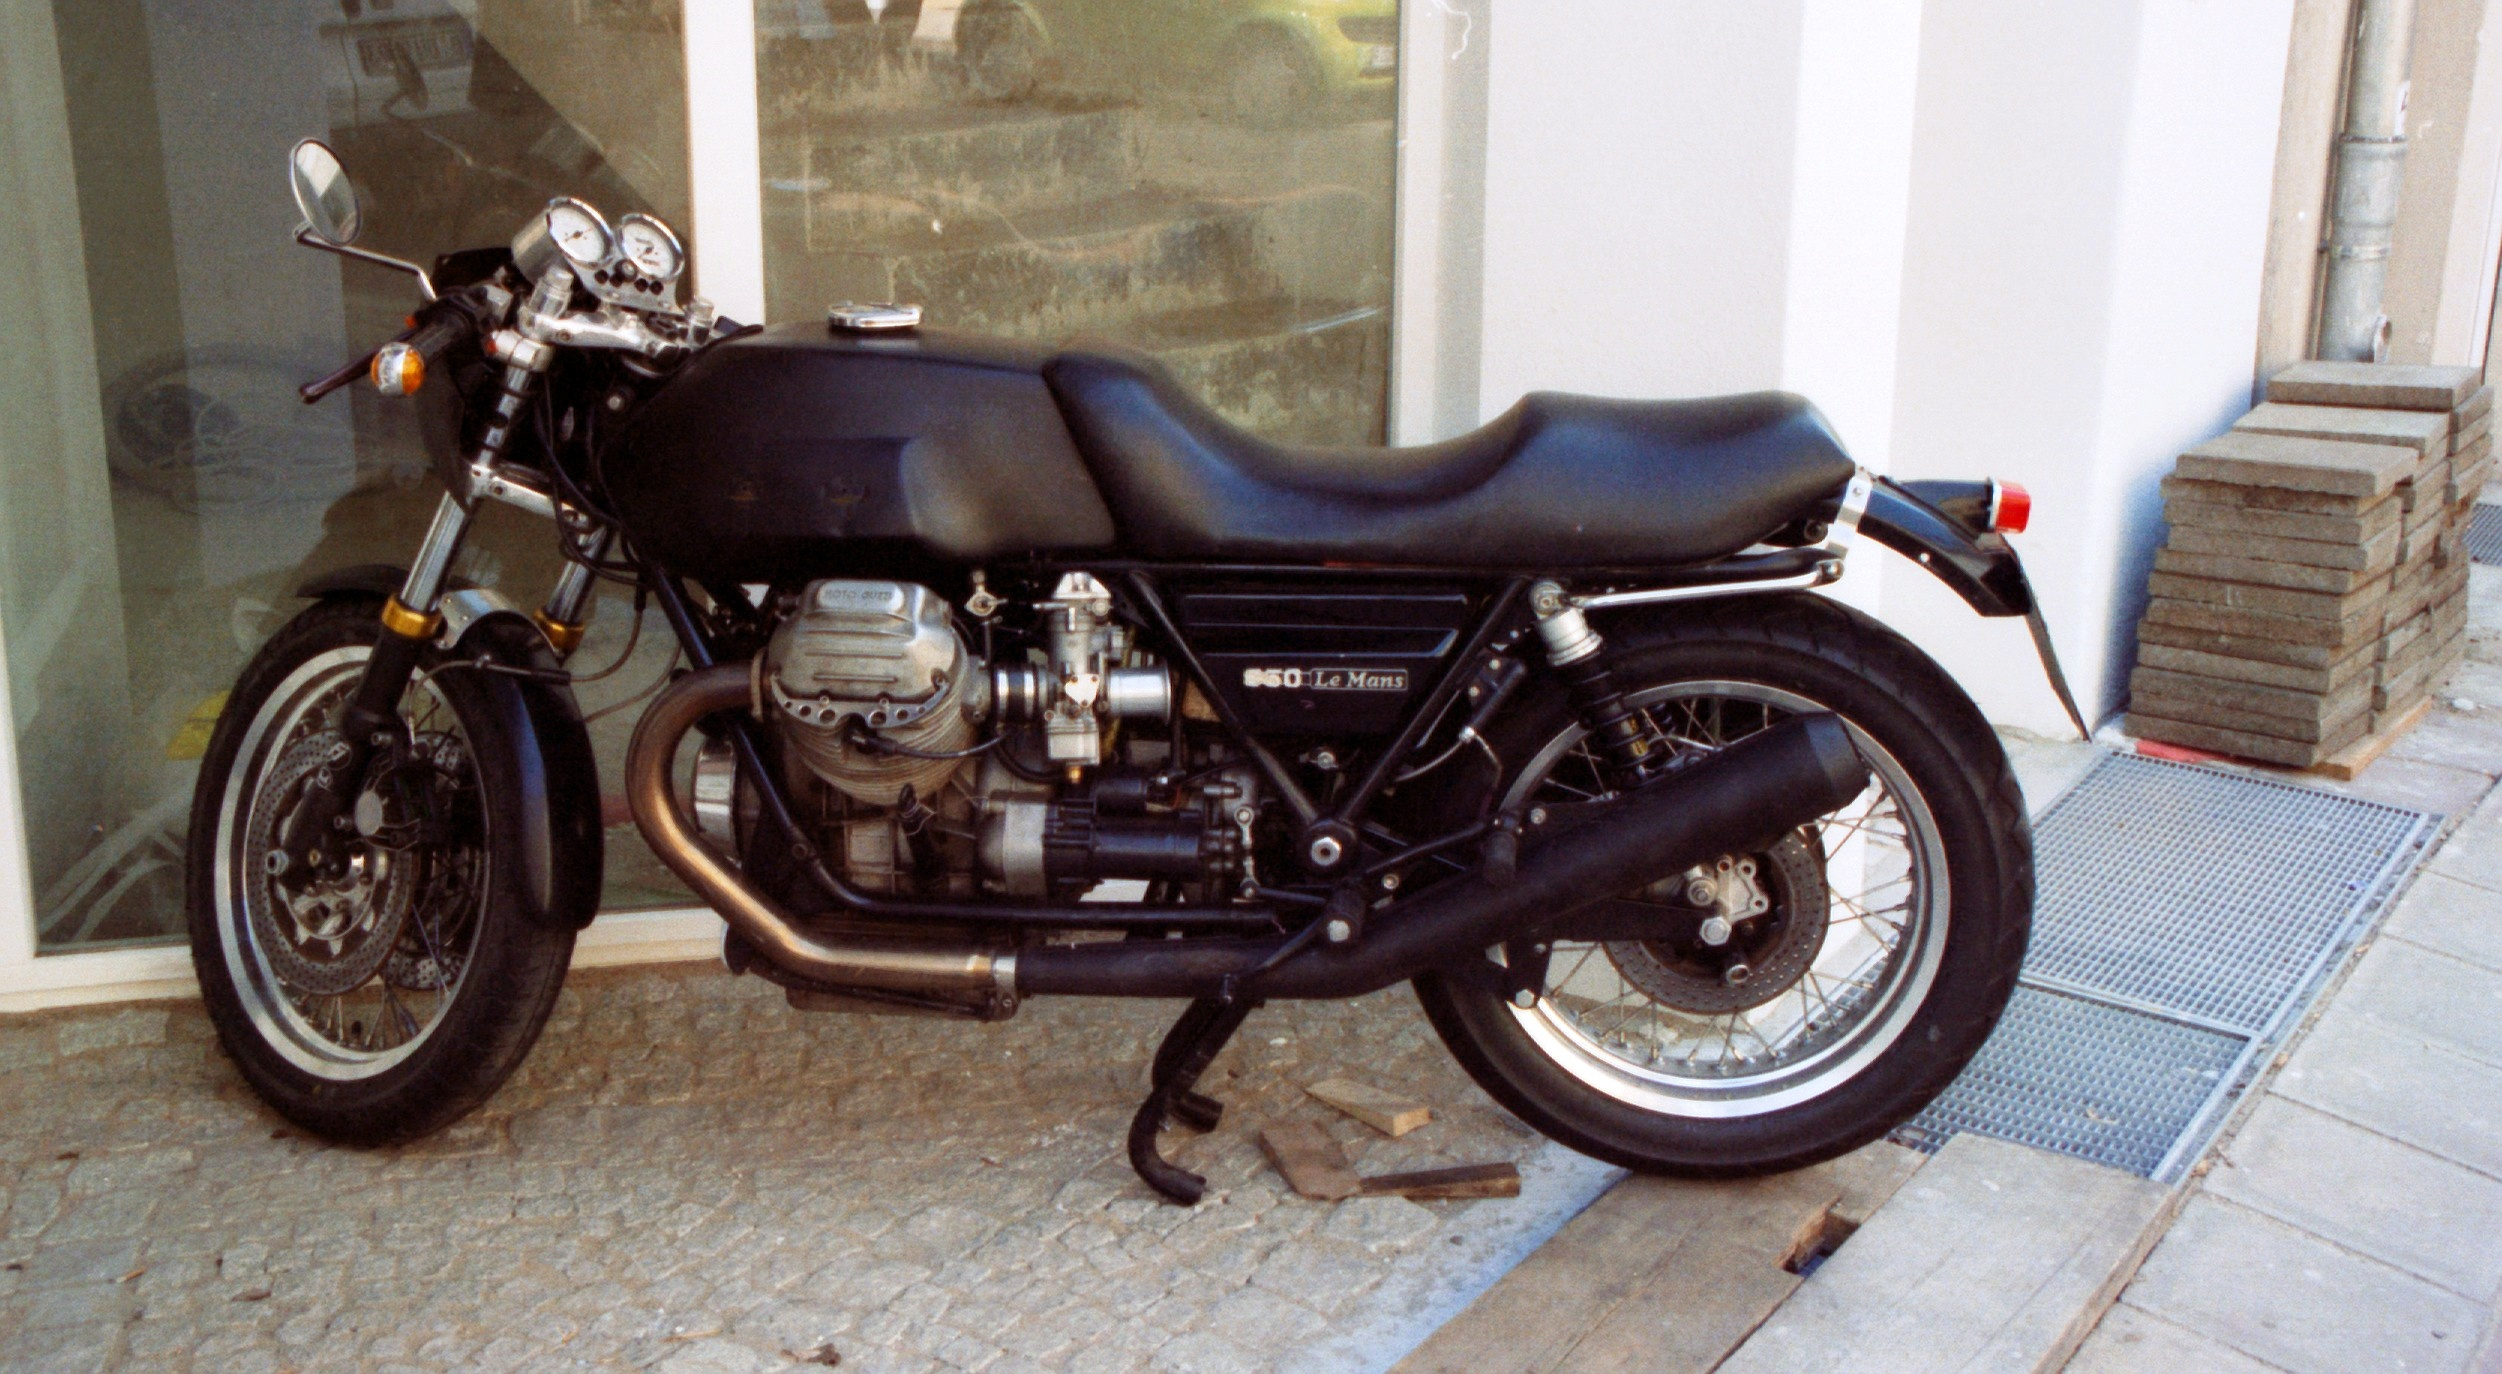 Moto Guzzi 1000 Daytona Injection images #108544